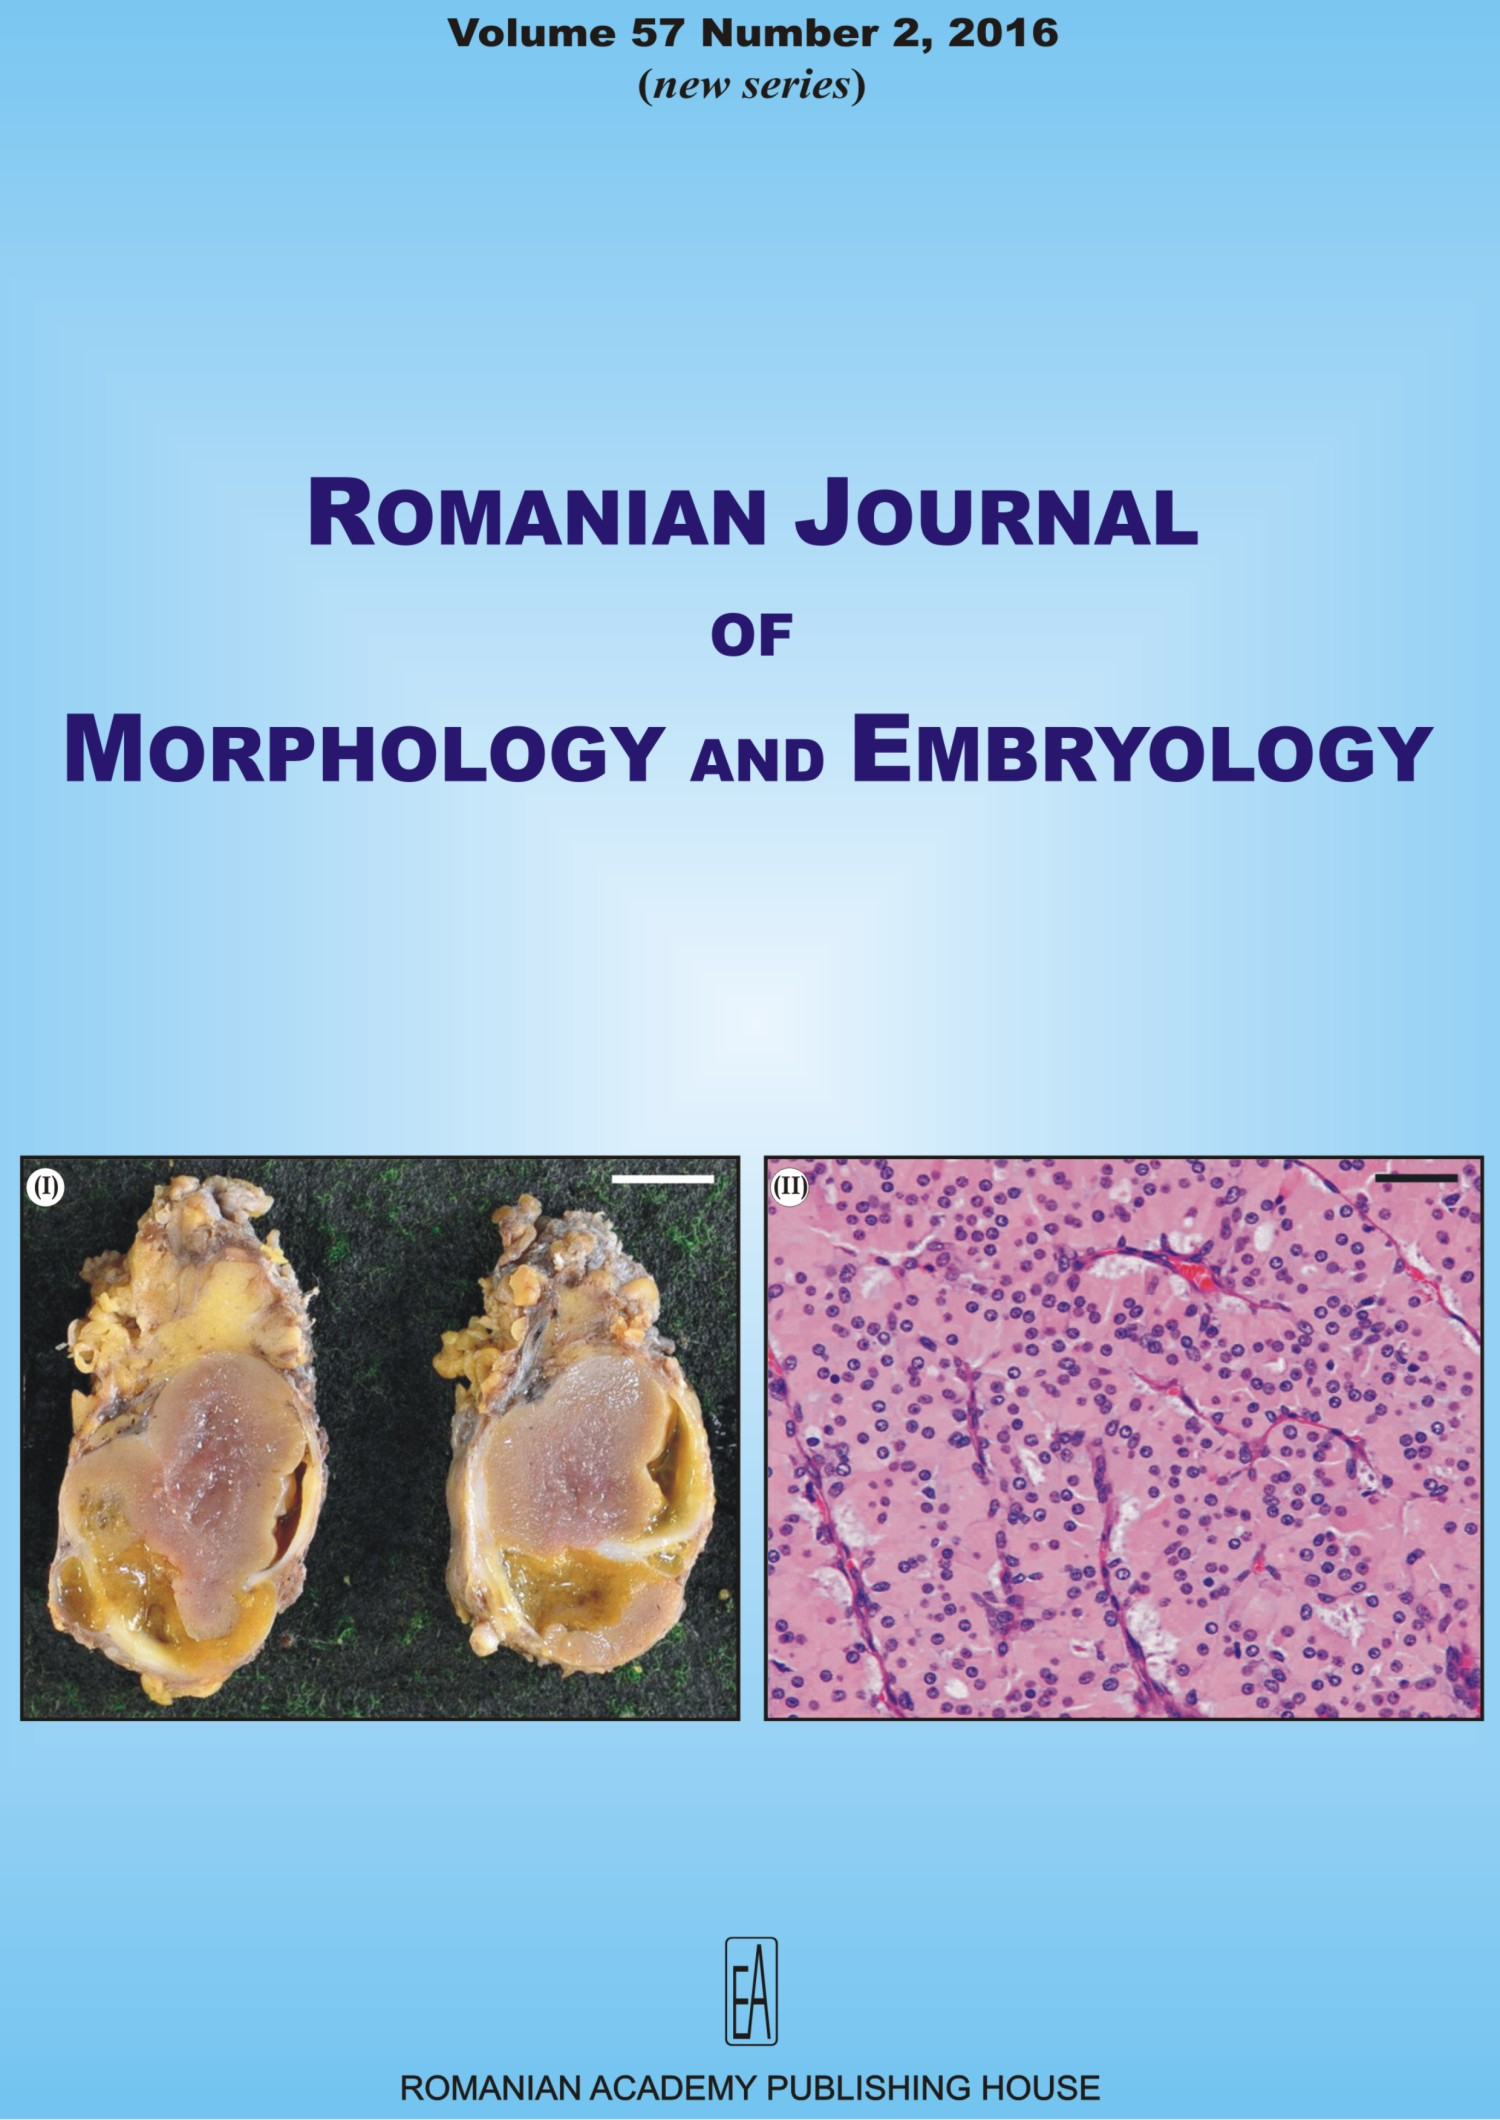 Romanian Journal of Morphology and Embryology, vol. 57 no. 2, 2016